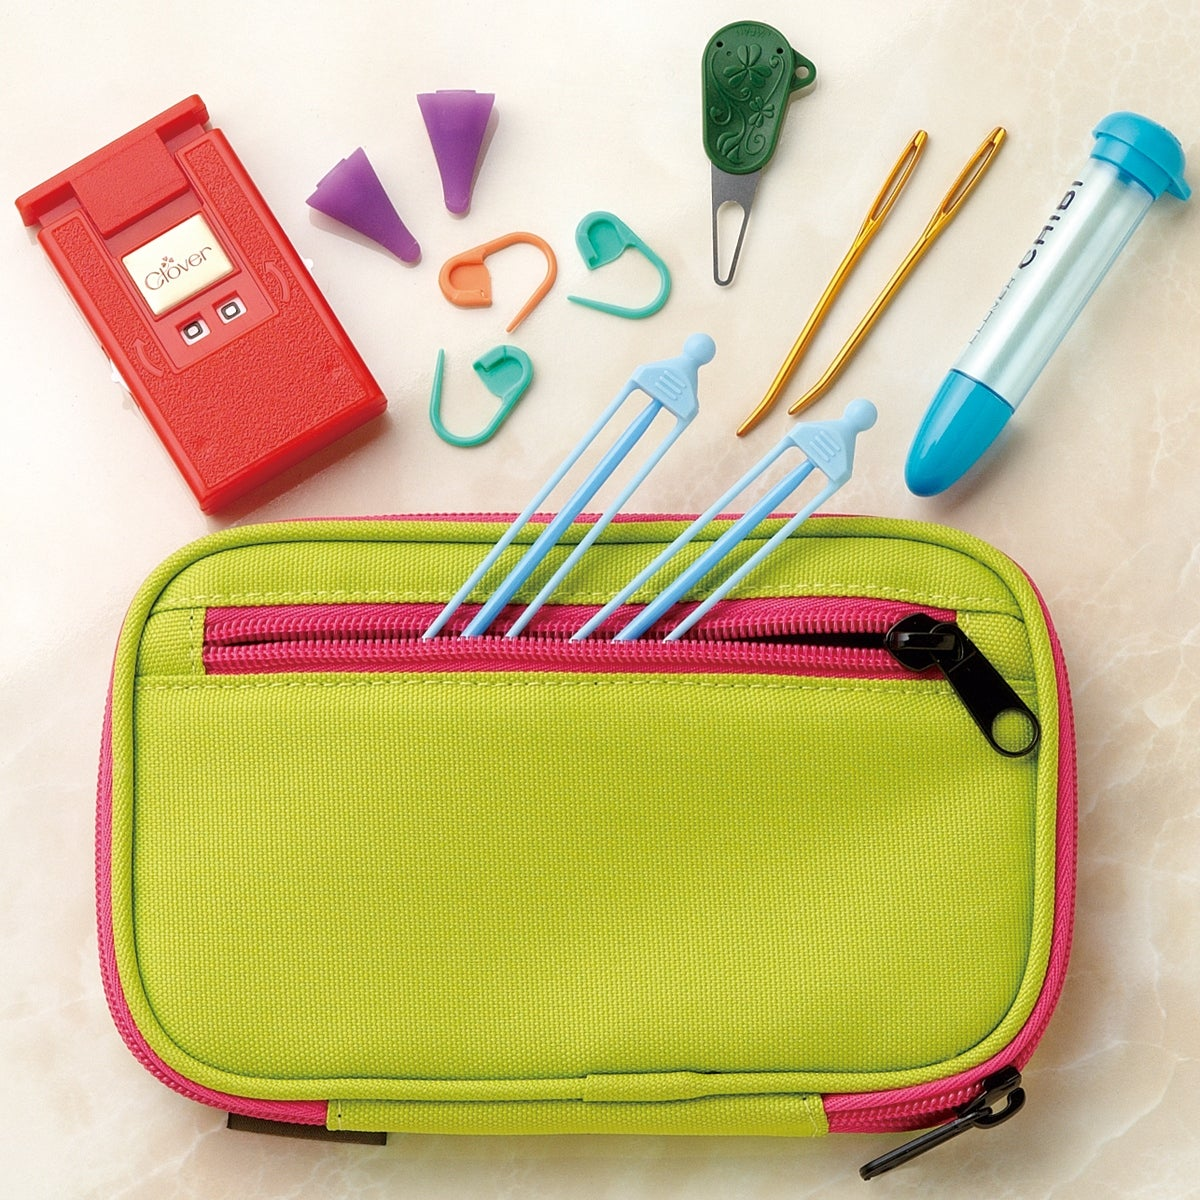 Clover 3673 Amour Crochet Hook Set With Zippered Case Size 10 Neon Green With Hot Pink Trim